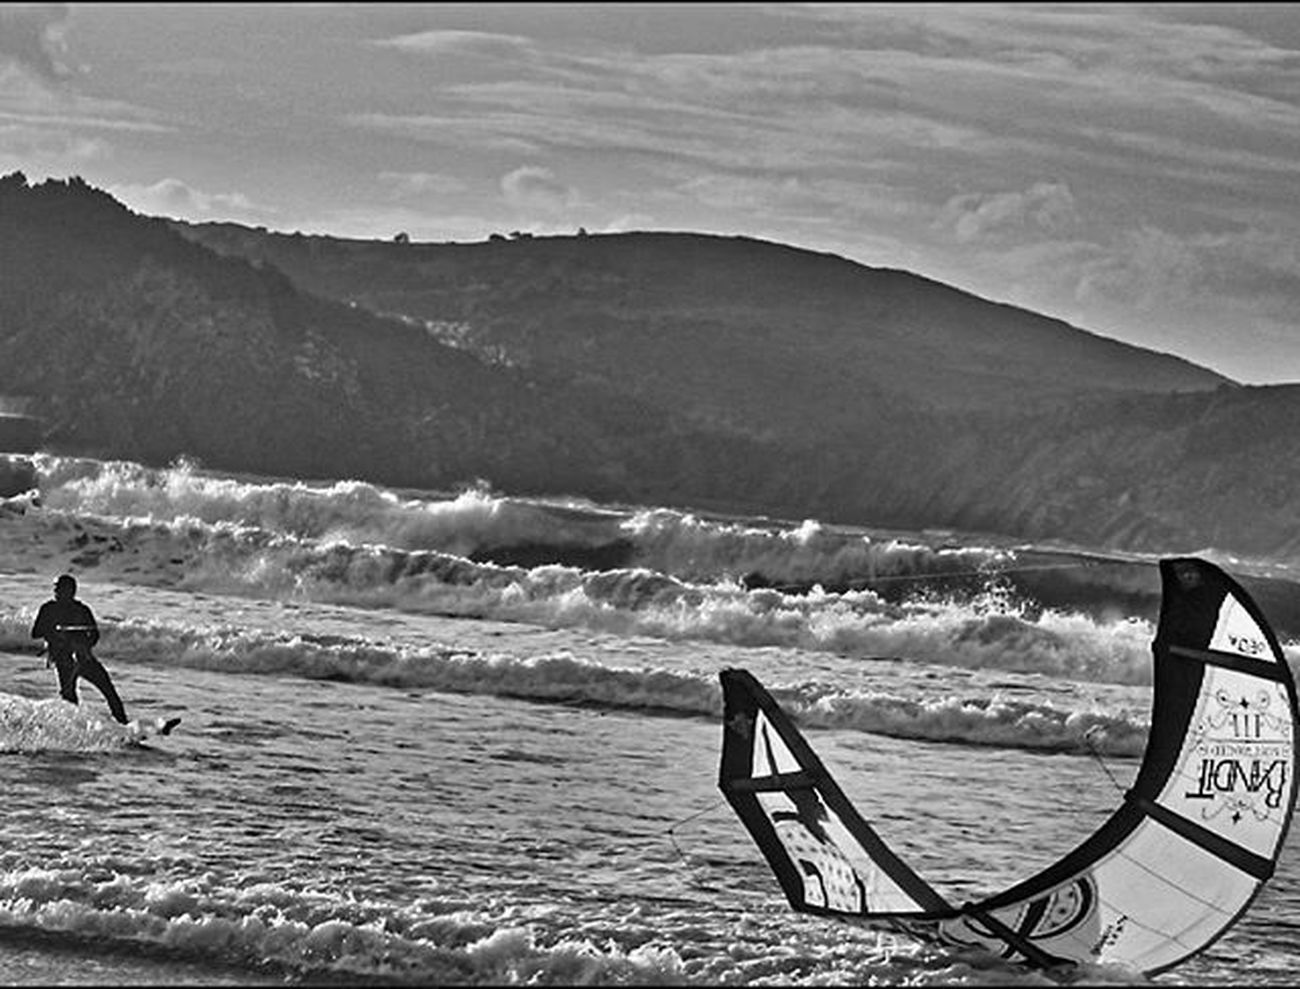 Kitesurf en plentzia 1/3 submission for 3shotsmonochrome challenge invited by my dear friend @sw_winters. Now i would invite: @laura.compte @anama1900 and @borja_delapresa. Only if you want to have fun with bnw, no pressure, 3 images, one per day, and invite 3 of your friends per day! Have fun! Blackandwhite Bnwsplash_paisvasco Total_bnw Bnw_greatshots Ok_bnw Verybilbao Bilbosoul Ilovebilbao Total_euskadi Estaes_paisvasco Loves_euskadi Ig_sanat Igersbilbao Igersbizkaia Igerseuskadi Loves_euskadi Naturaleza_euskadi Landscape View Visiteuskadi Webstagram Tagsforlikes Photooftheday Picoftheday all_shots like4like instagood waves sea turismo_euskadi